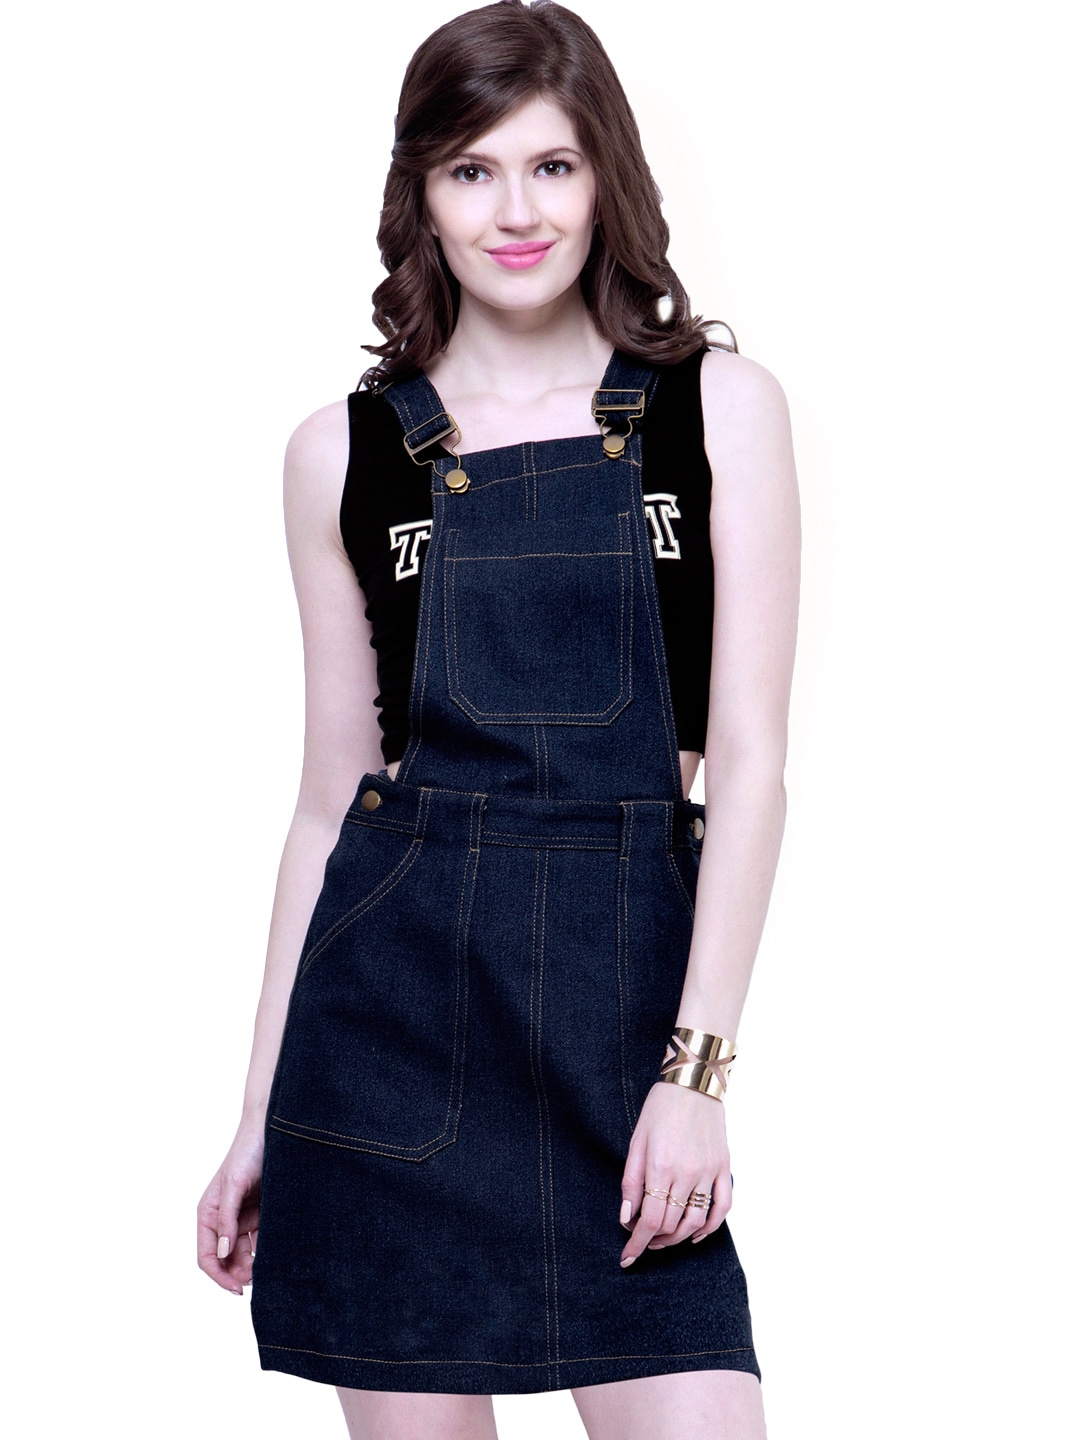 Denim Dresses - Buy Denim Dresses Online in India | Myntra